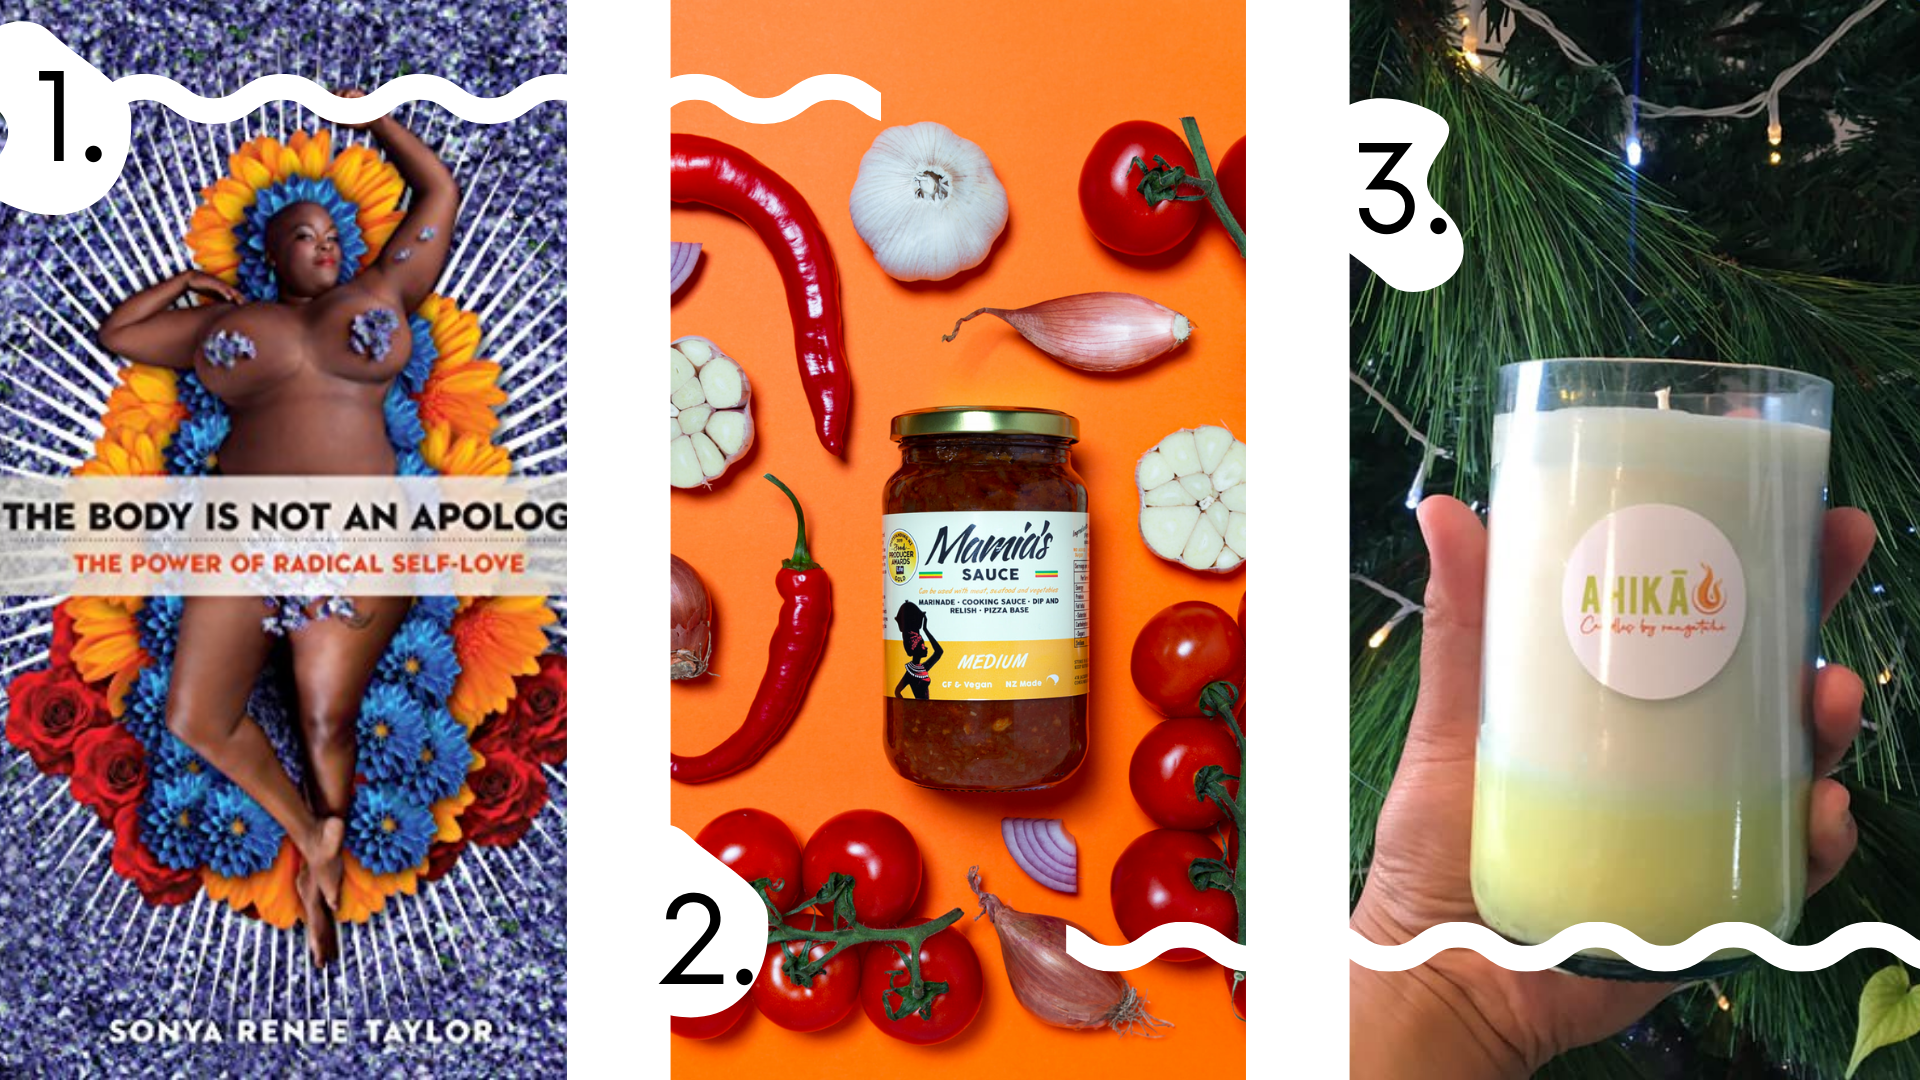 1. Sonya naked covered in purple flowers lying on a flower bed as a cover of her book; 2. A jar of Mamia's sauce on the orange background surrounded by garlic, onion, peppers and tomatoes; 3. Candle being held by a hand in front of the Christmas tree